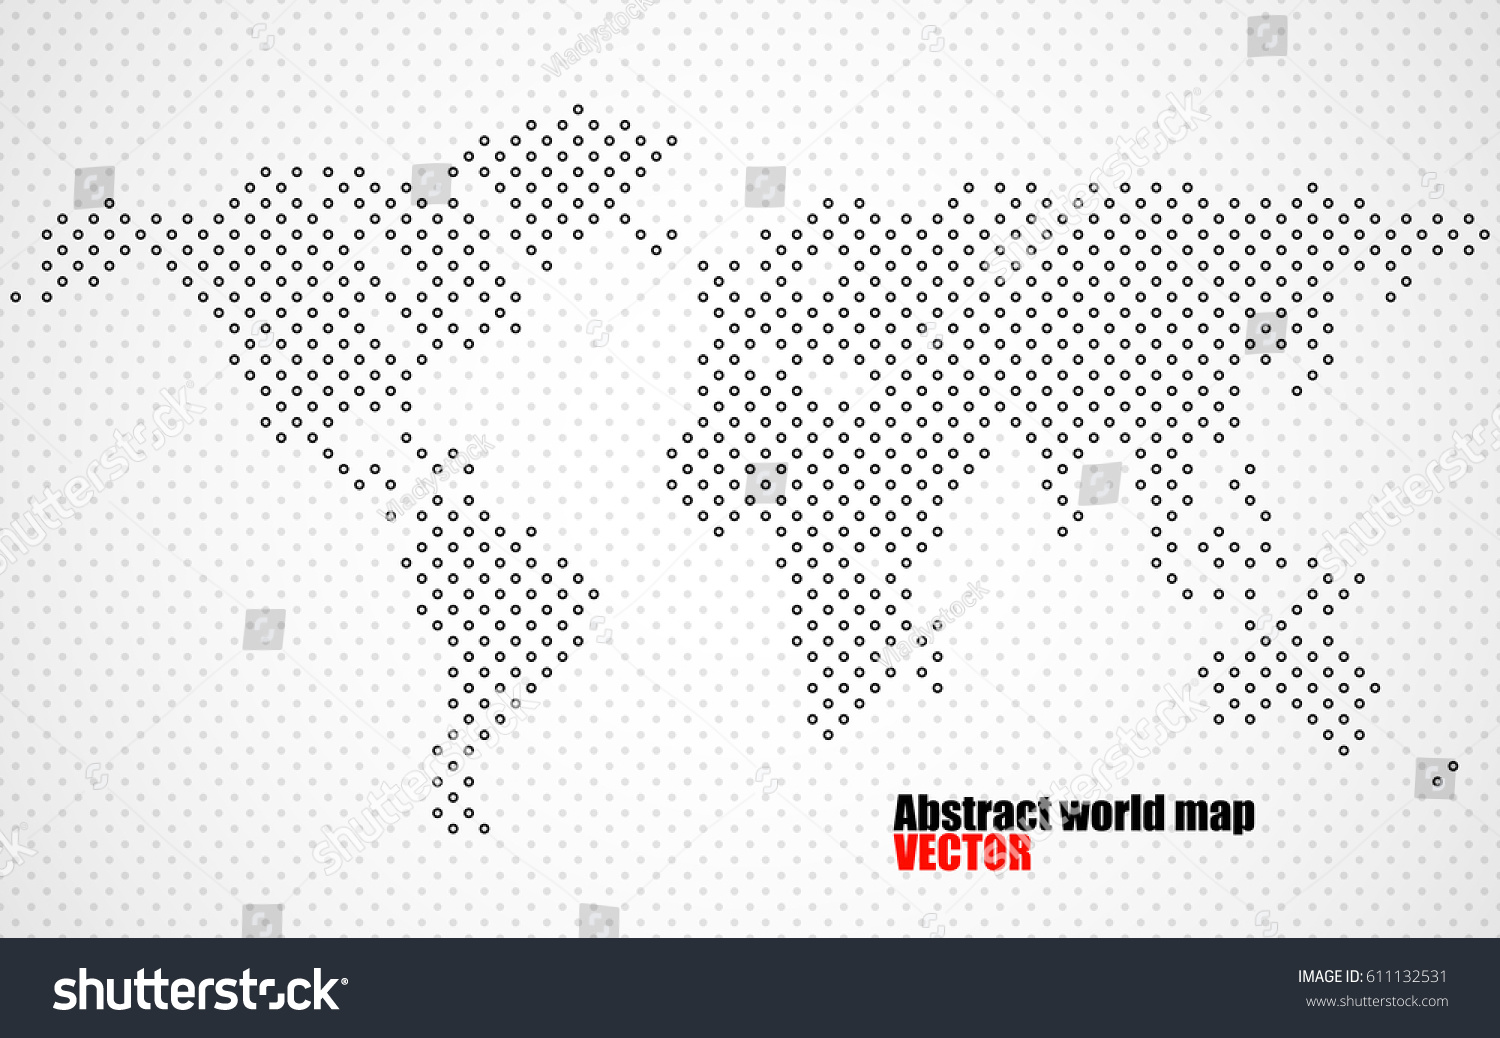 Abstract halftone world map vector stock vector 611132531 shutterstock abstract halftone world map vector gumiabroncs Images